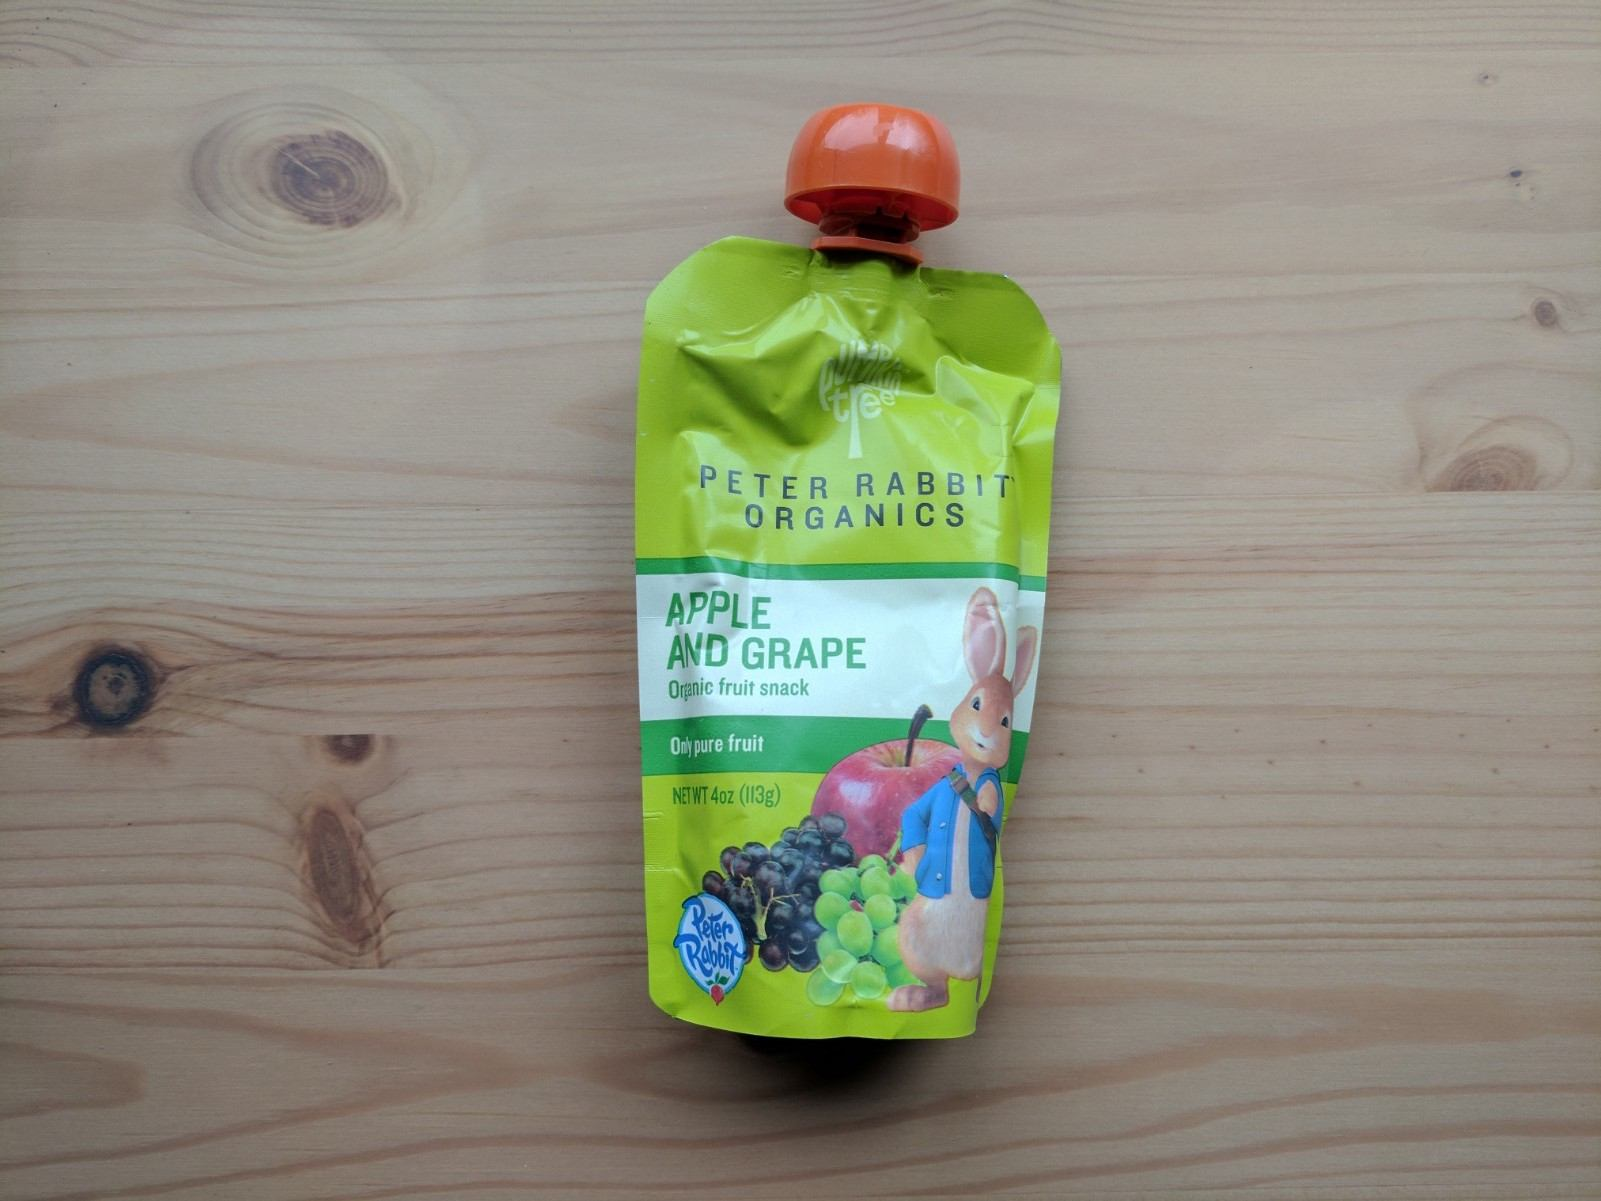 Peter Rabbit Organics Apple Fruit Snack